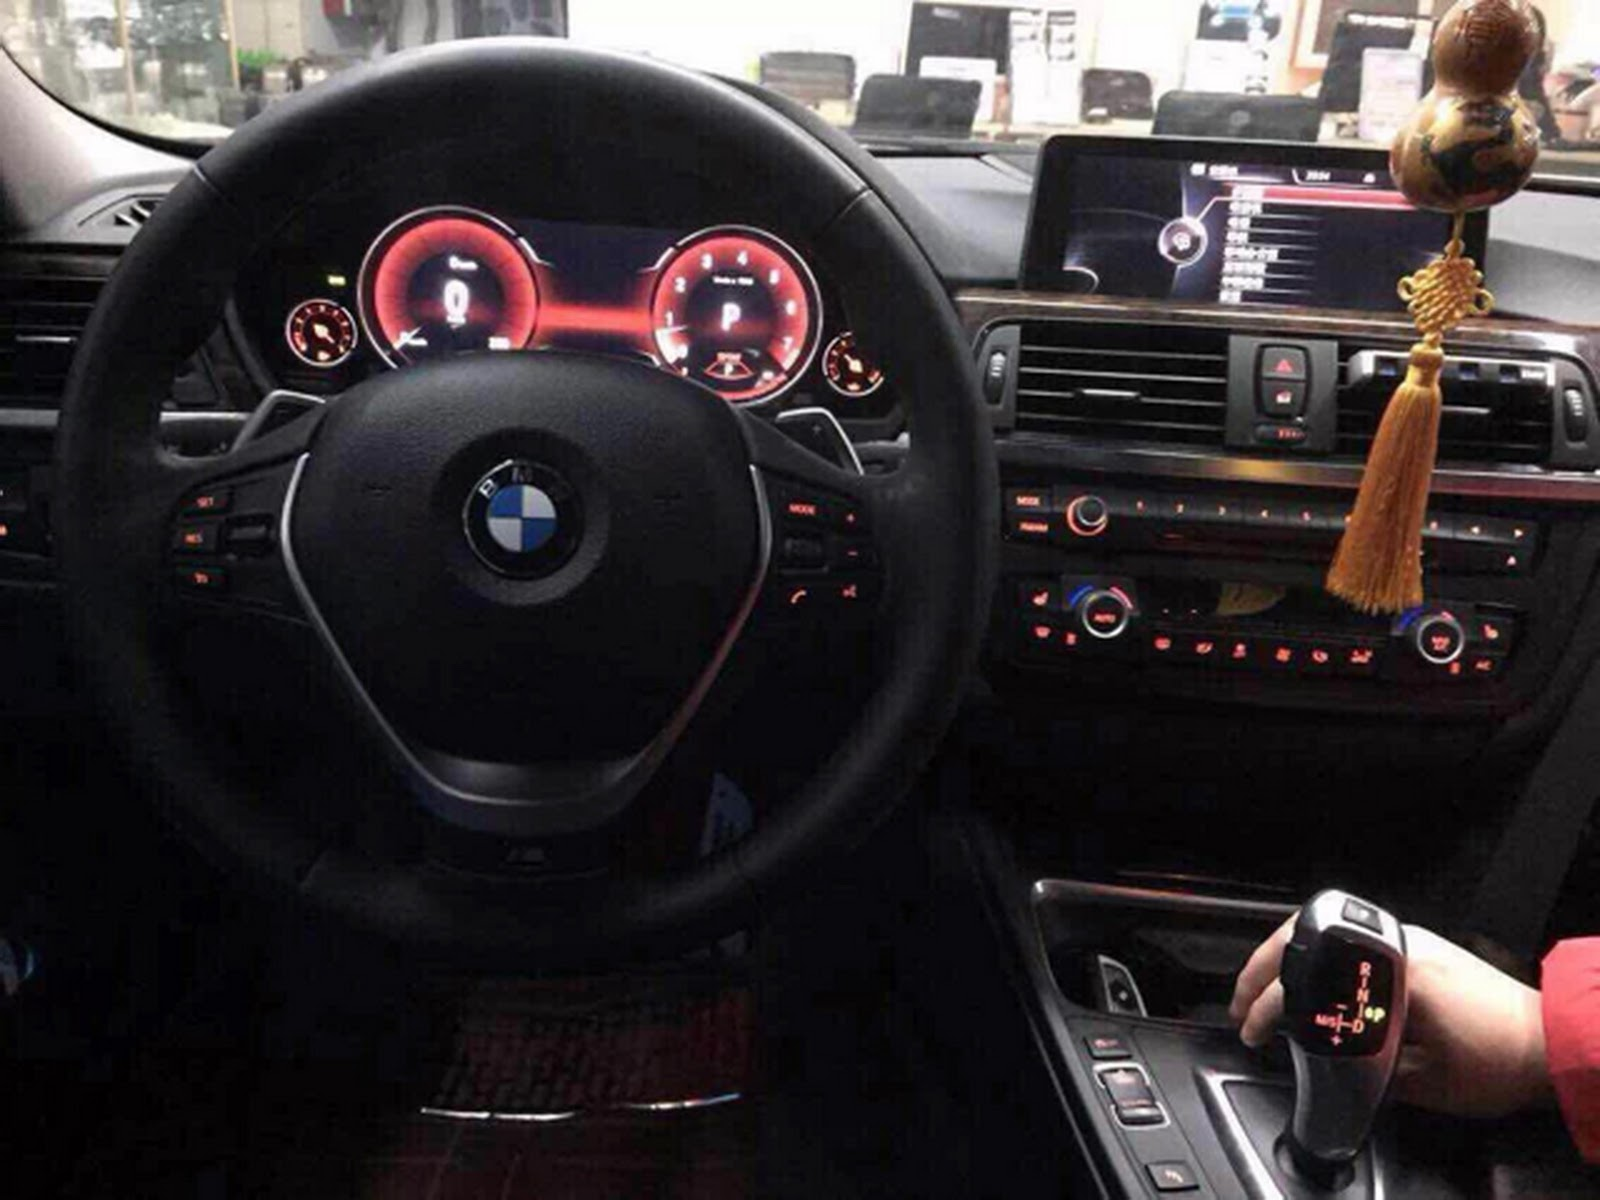 Bmw 3 Series F30 Modded With 5 Series F10 S Digital Instrument Panel Carscoops